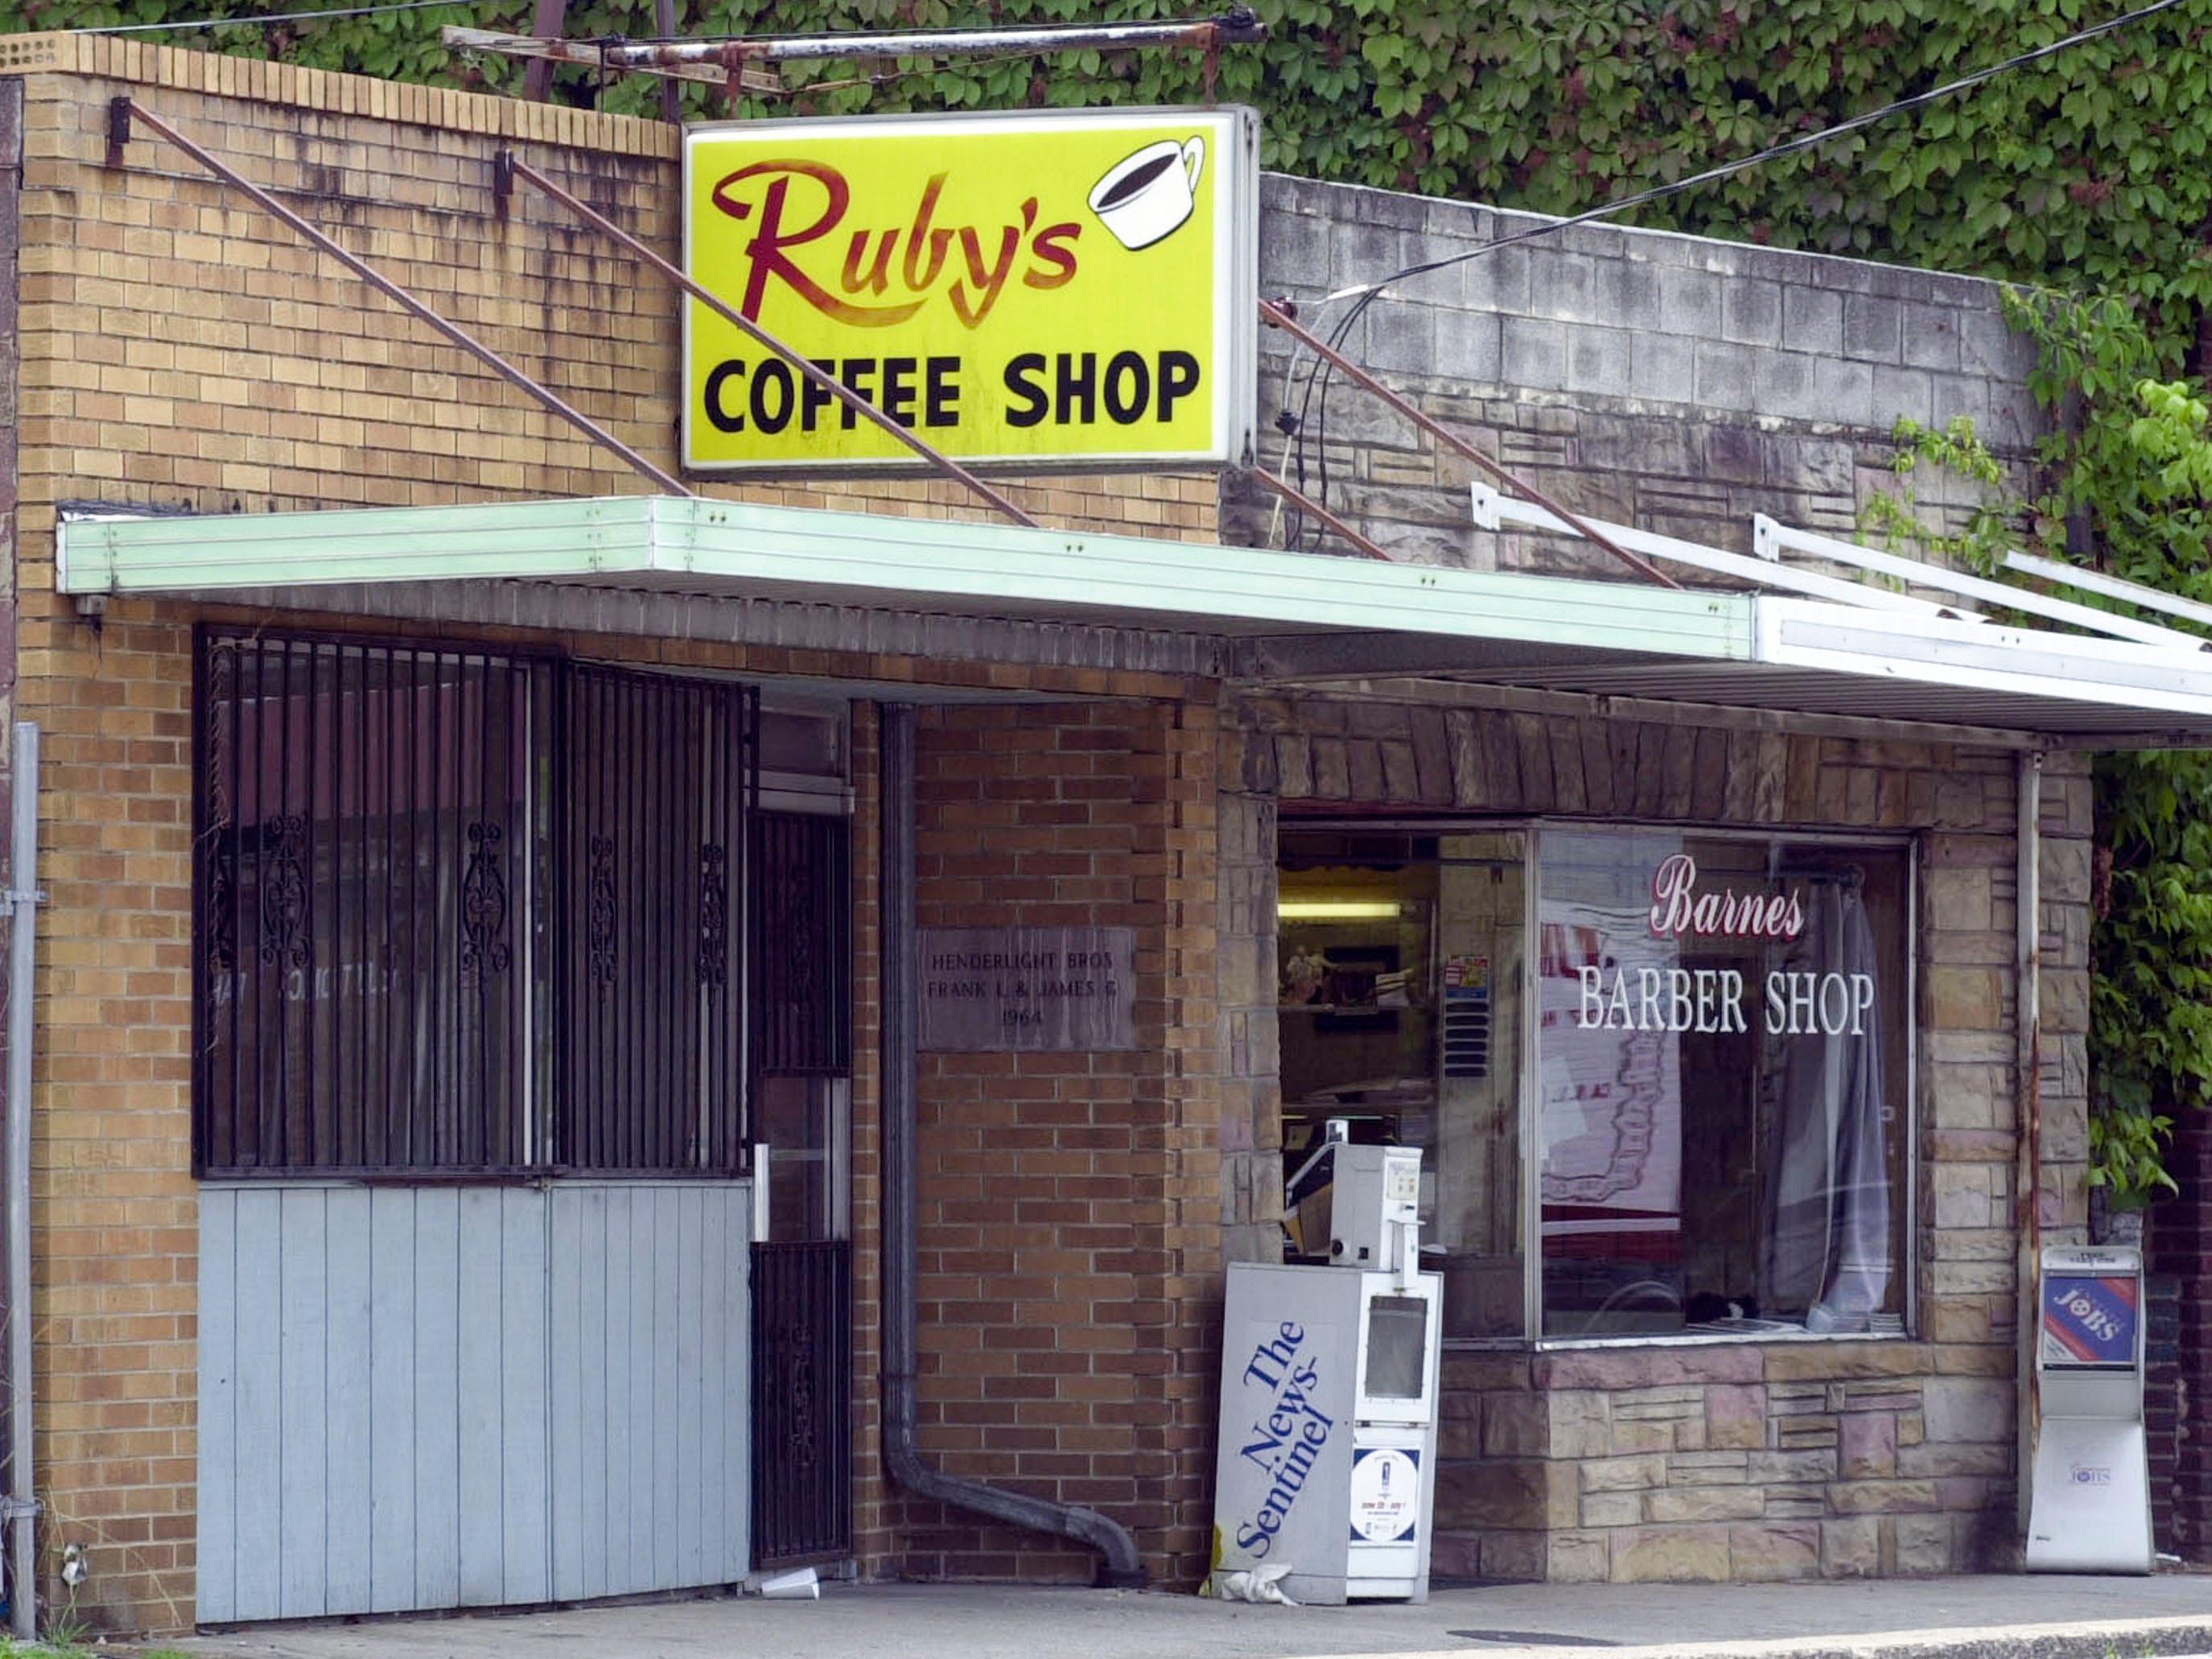 Ruby's Coffee Shop in East Knoxville in 1999. Ruby's is closed, but Barnes Barber is open.